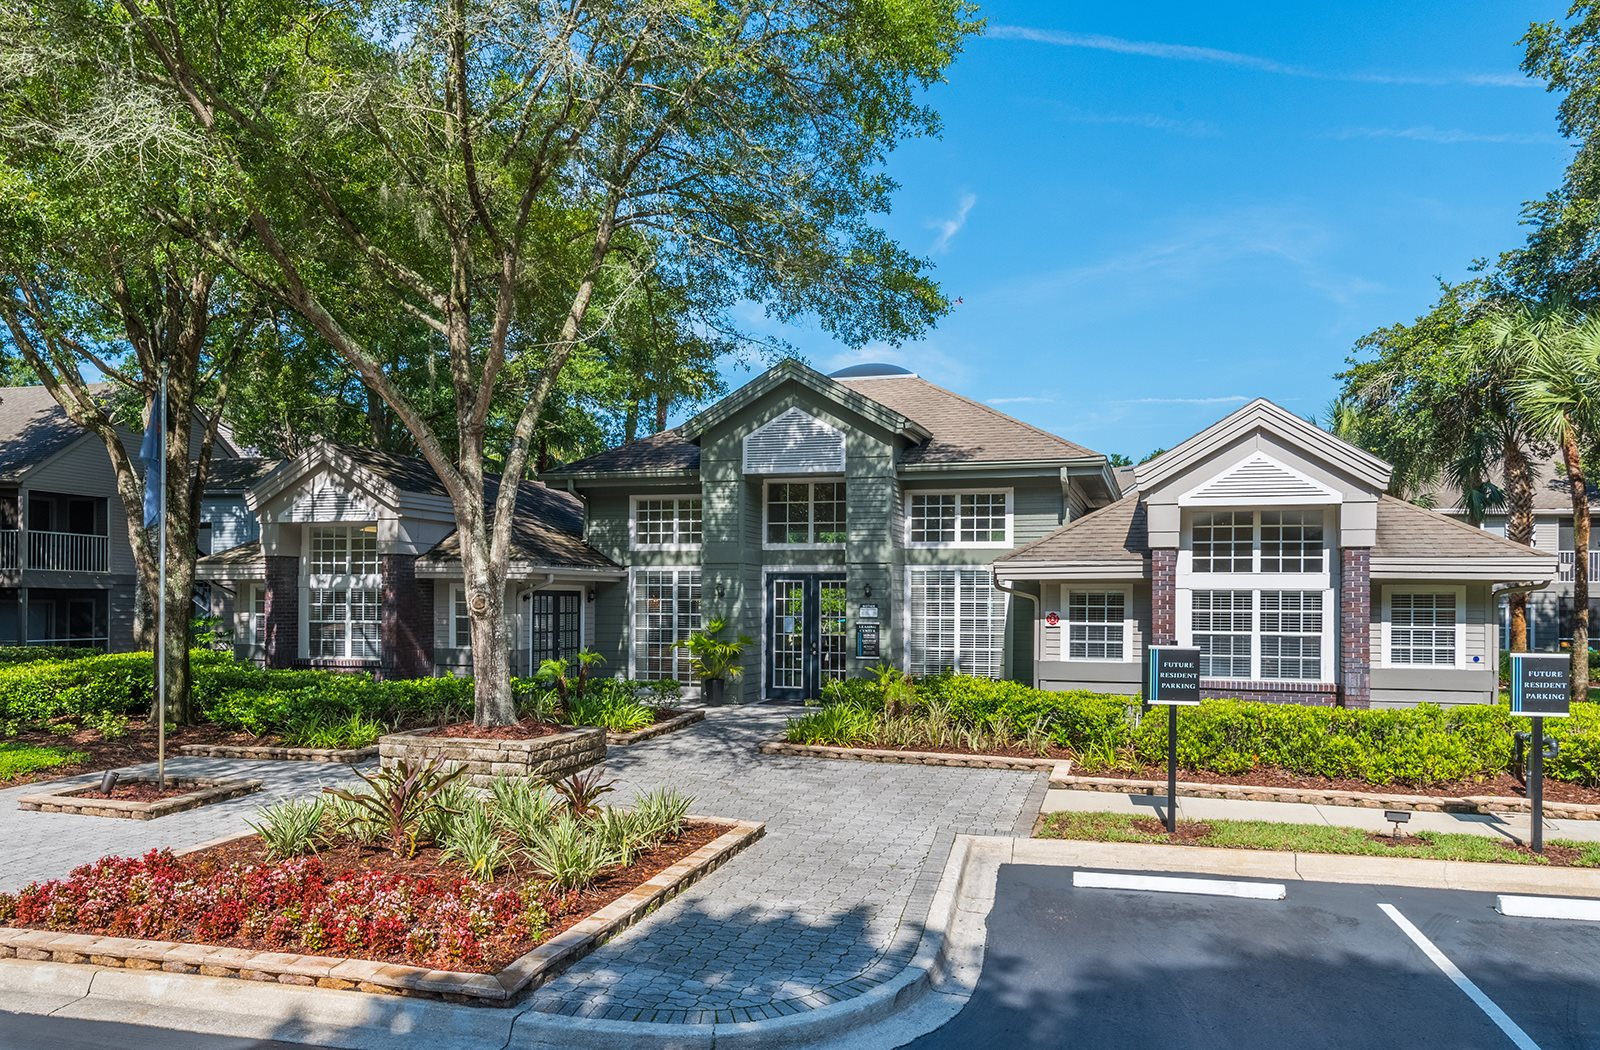 1 2 and 3 bedroom apartments for rent in jacksonville fl bay club